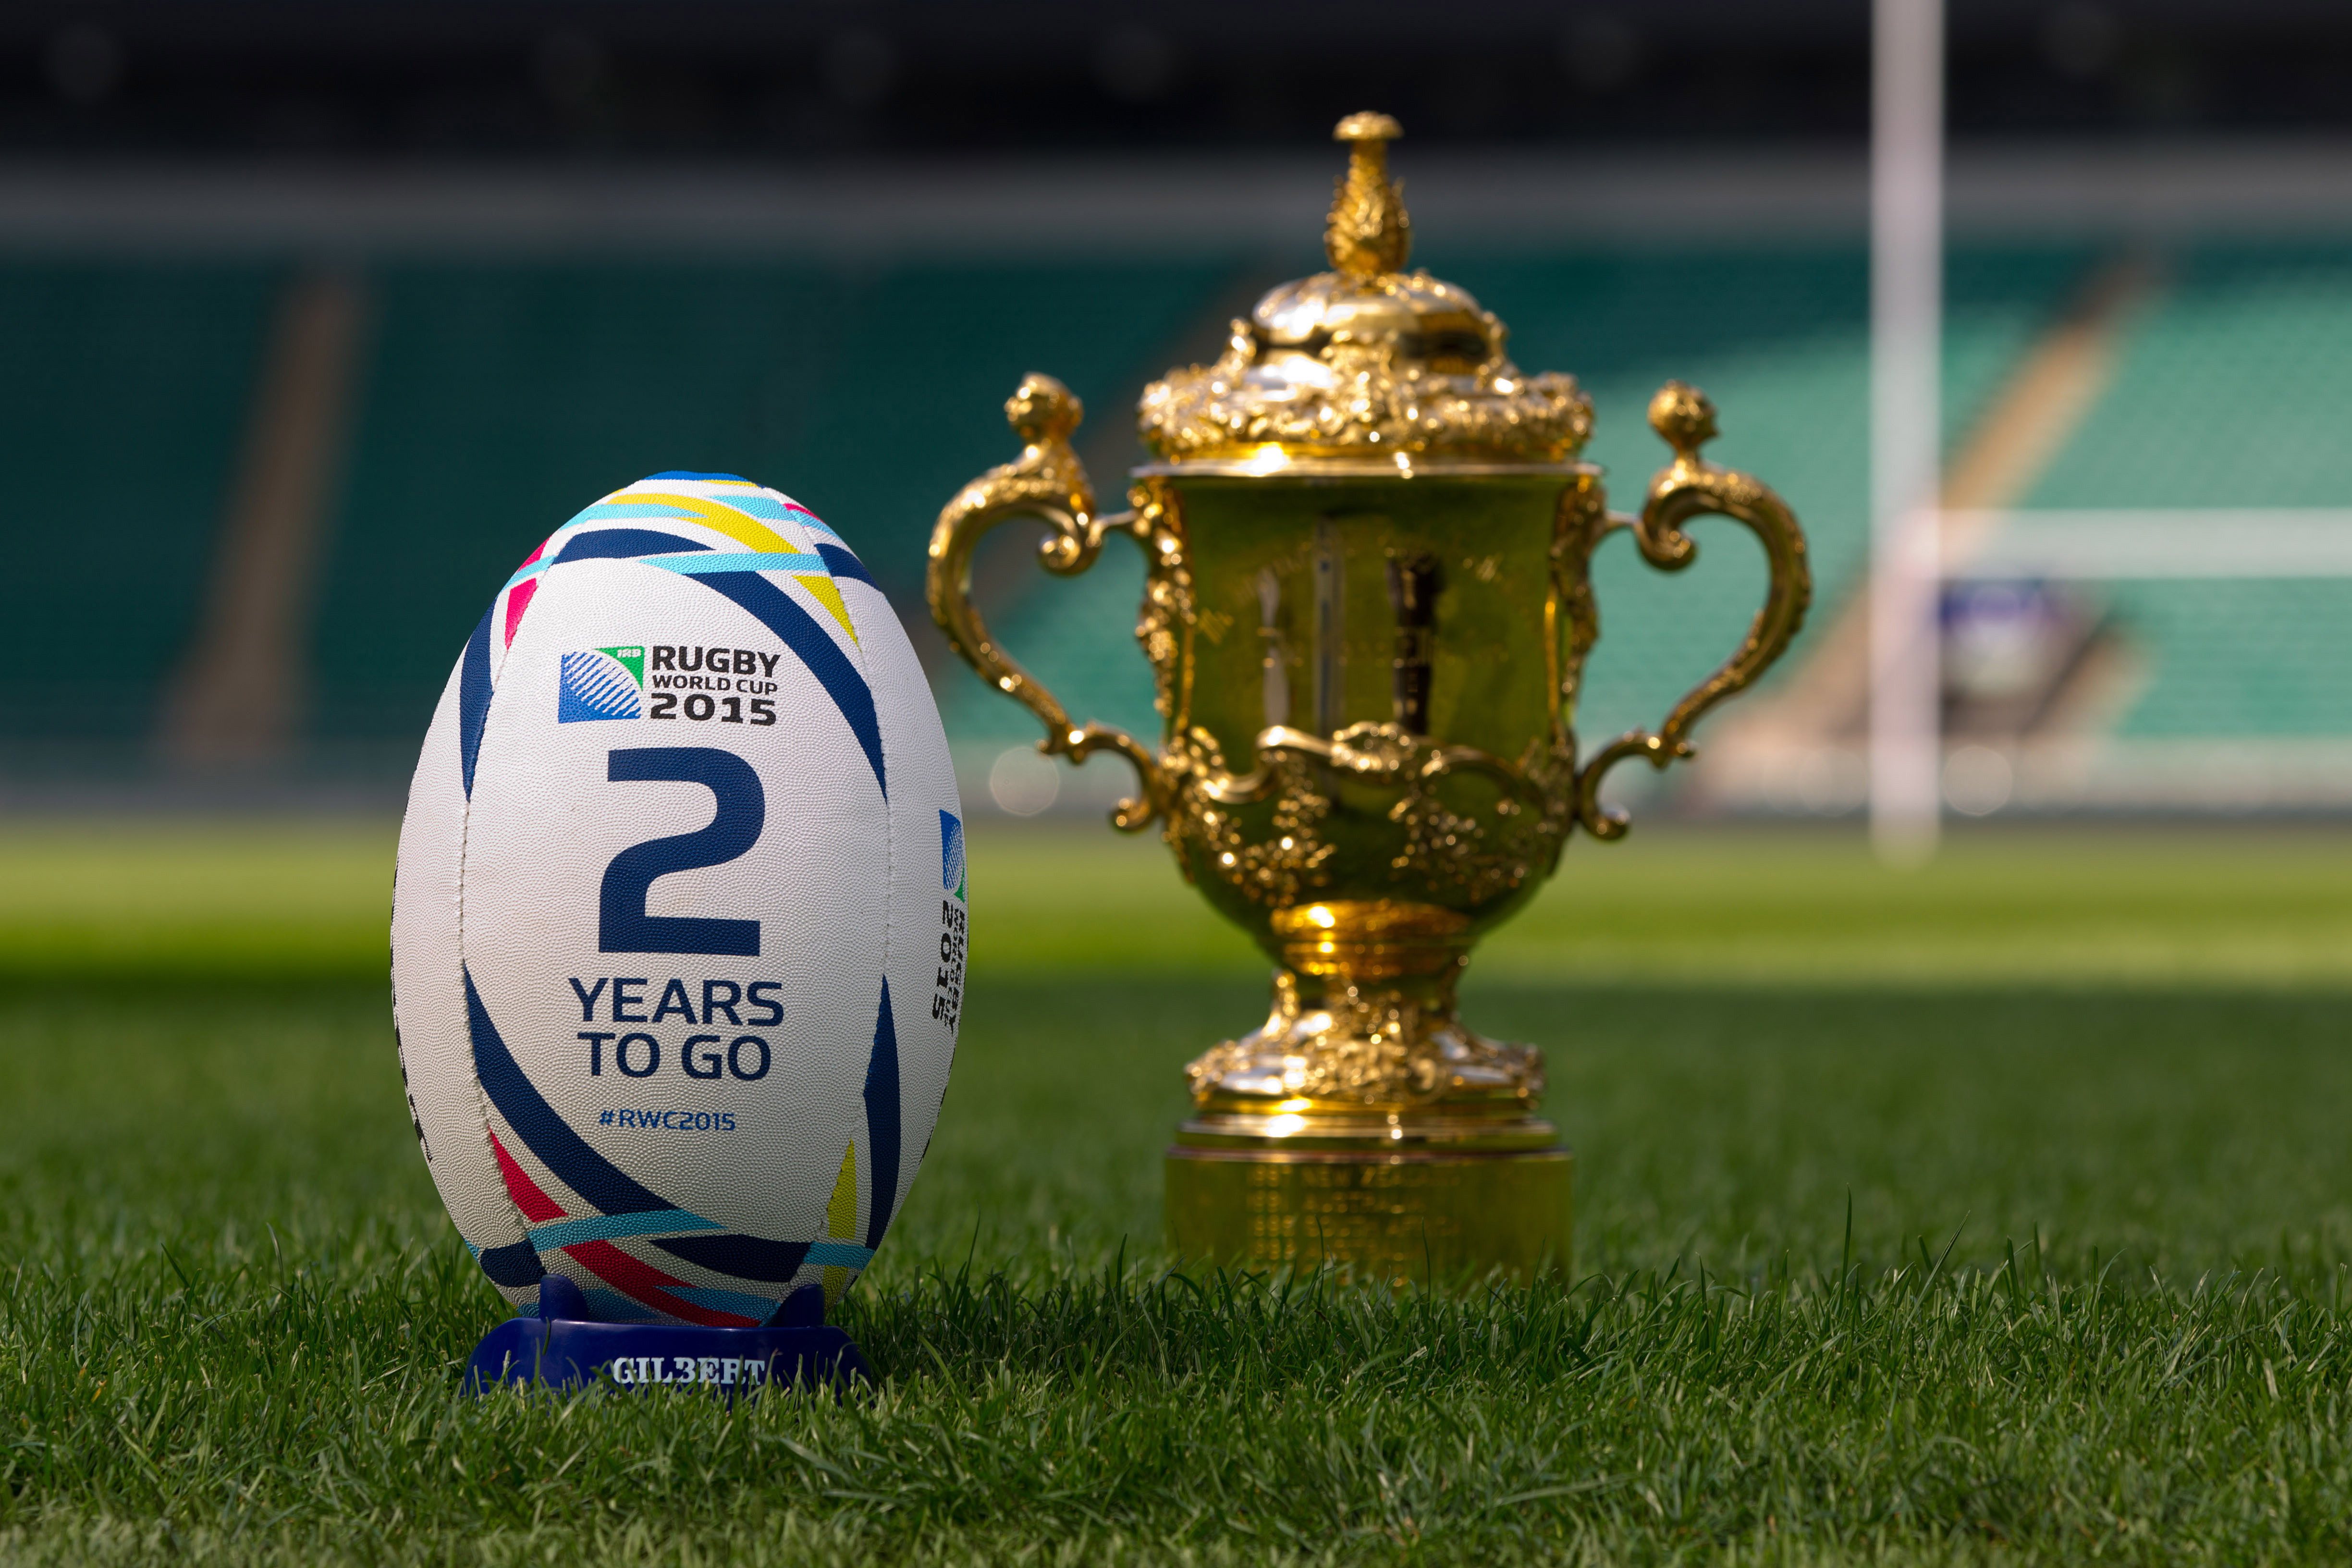 rugby world cup essay An economic impact study has revealed that rugby world cup 2015 in england is set to deliver nearly £1 billion of additive value into the uk economy.